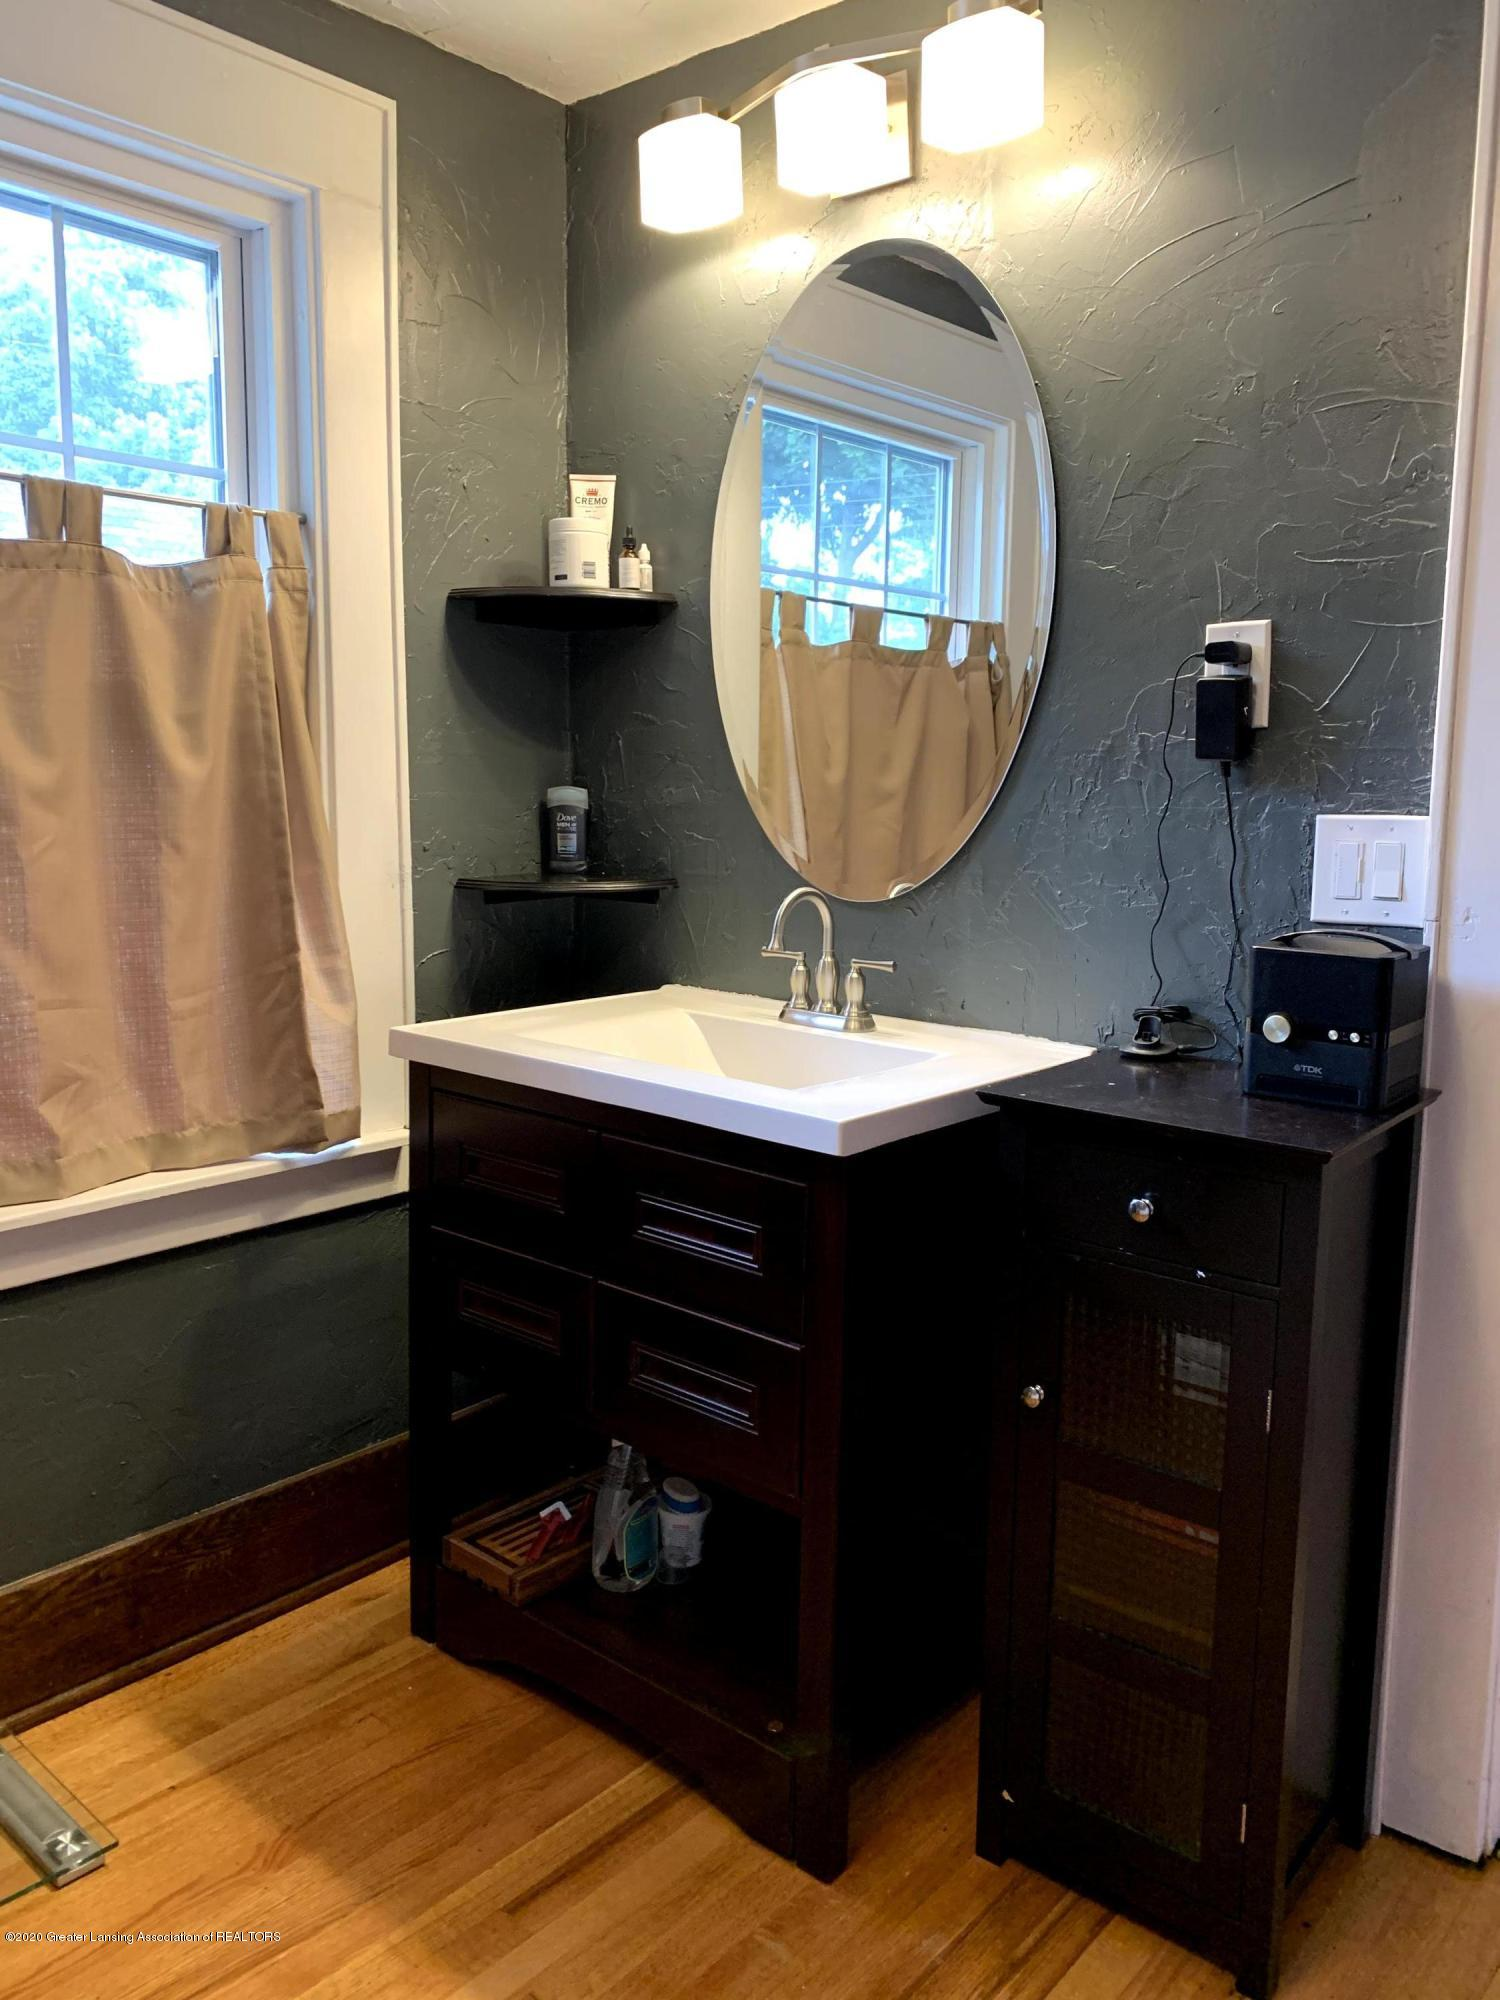 523 N Jenison Ave - Bathroom - 26